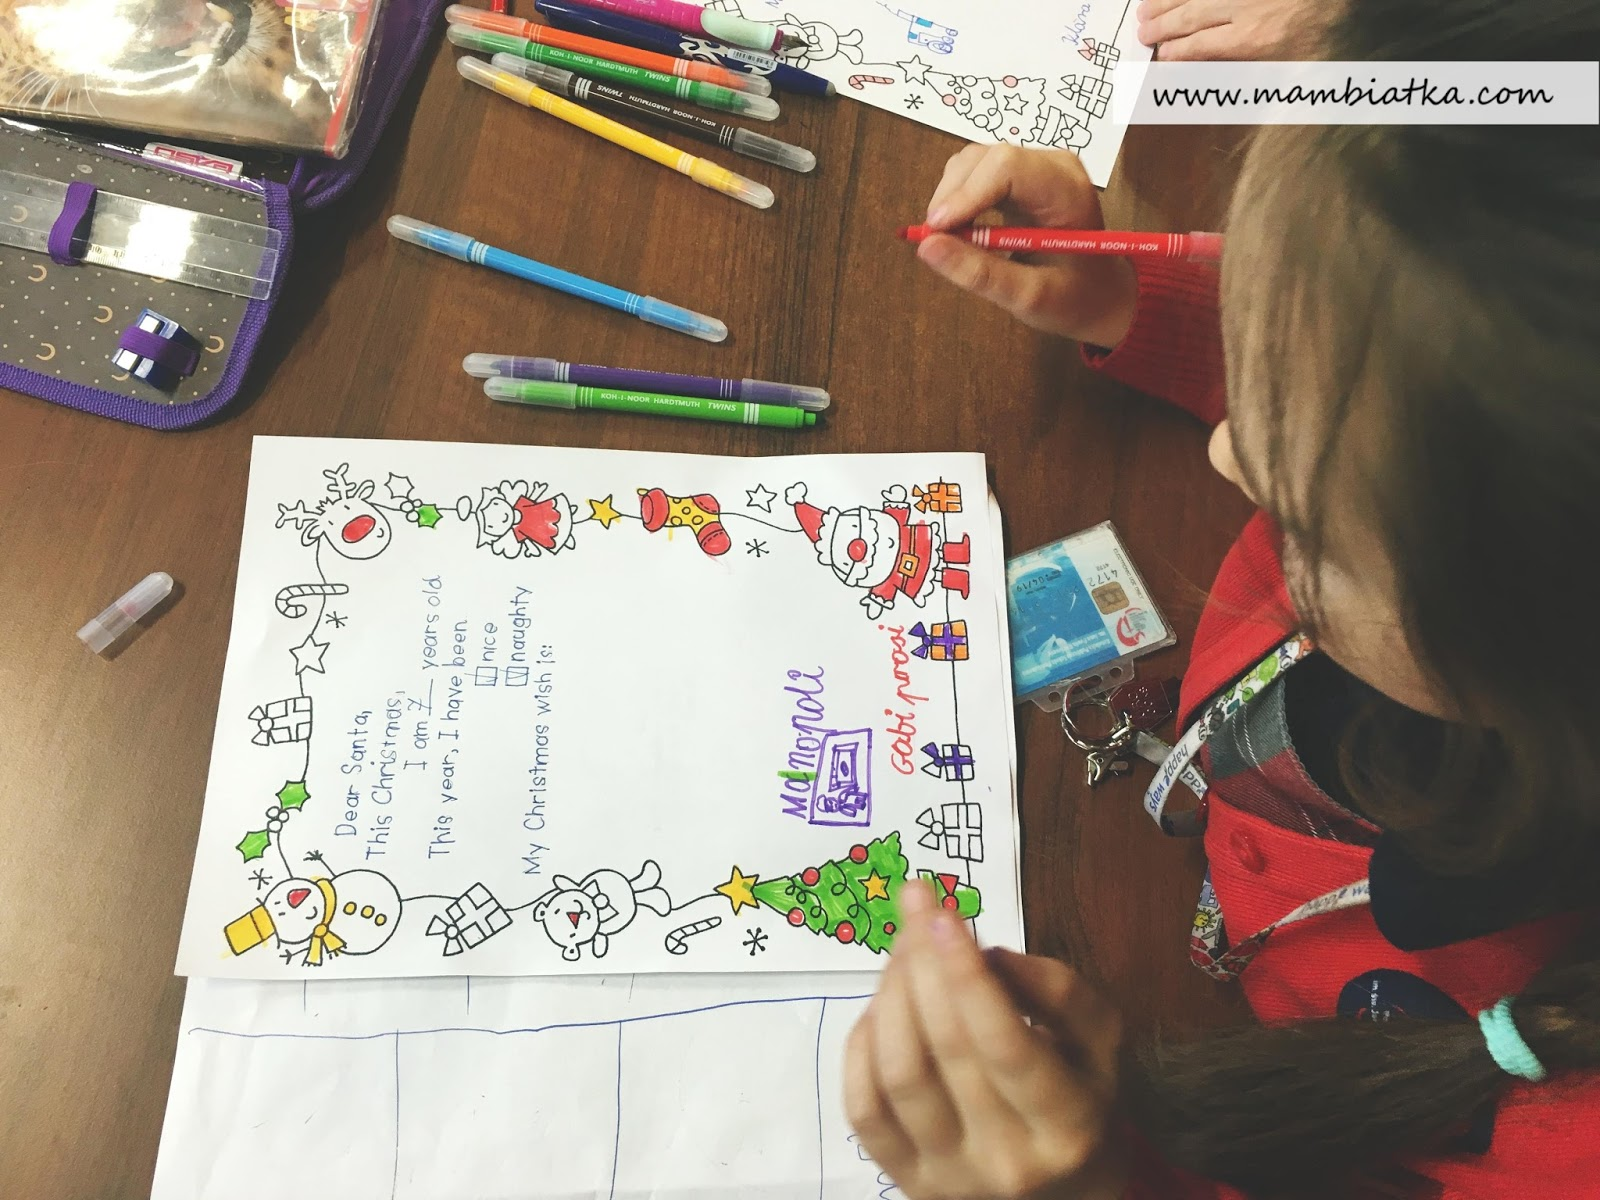 Mambiatka  English For Kids  Resources For Teachers And Parents